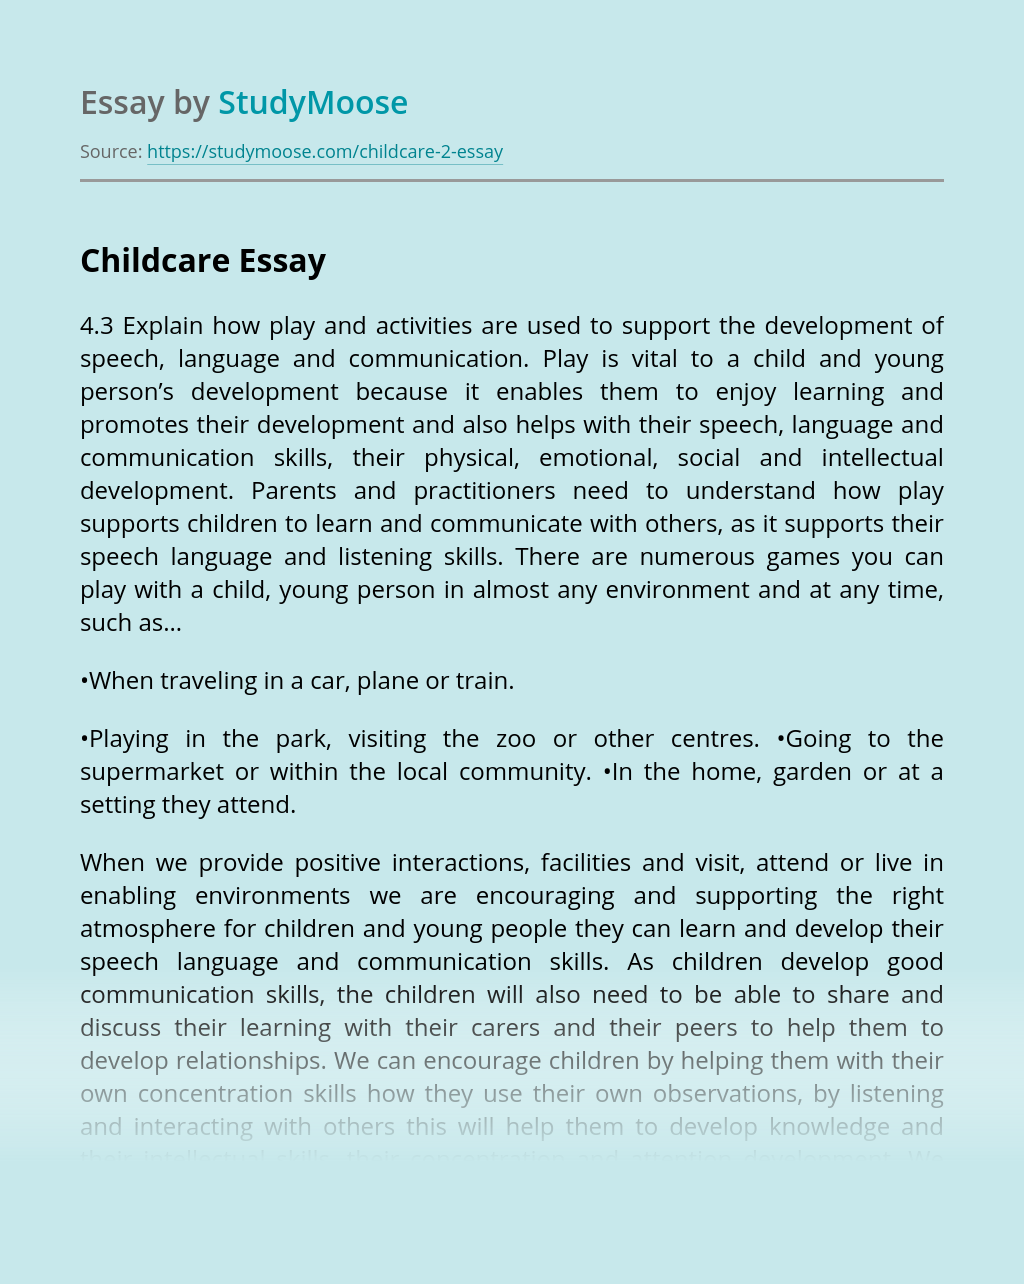 Why are Play and Activities important for Children?